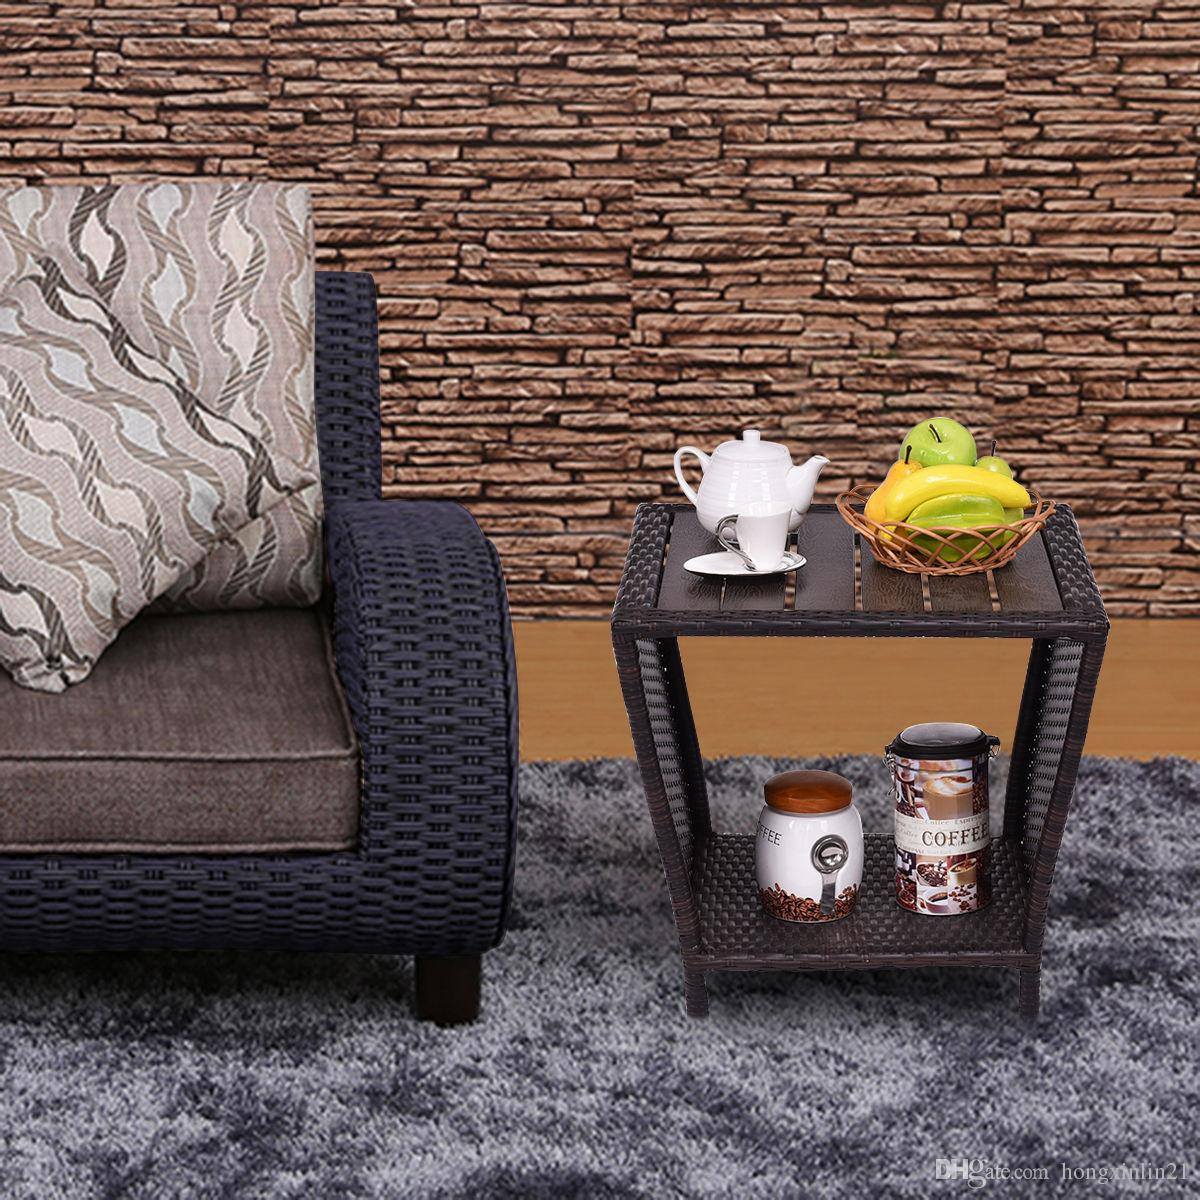 rattan side tables living room stylish chairs 2019 coffee end table 19 sofa furniture decor wood slat top from hongxinlin21 50 26 dhgate com